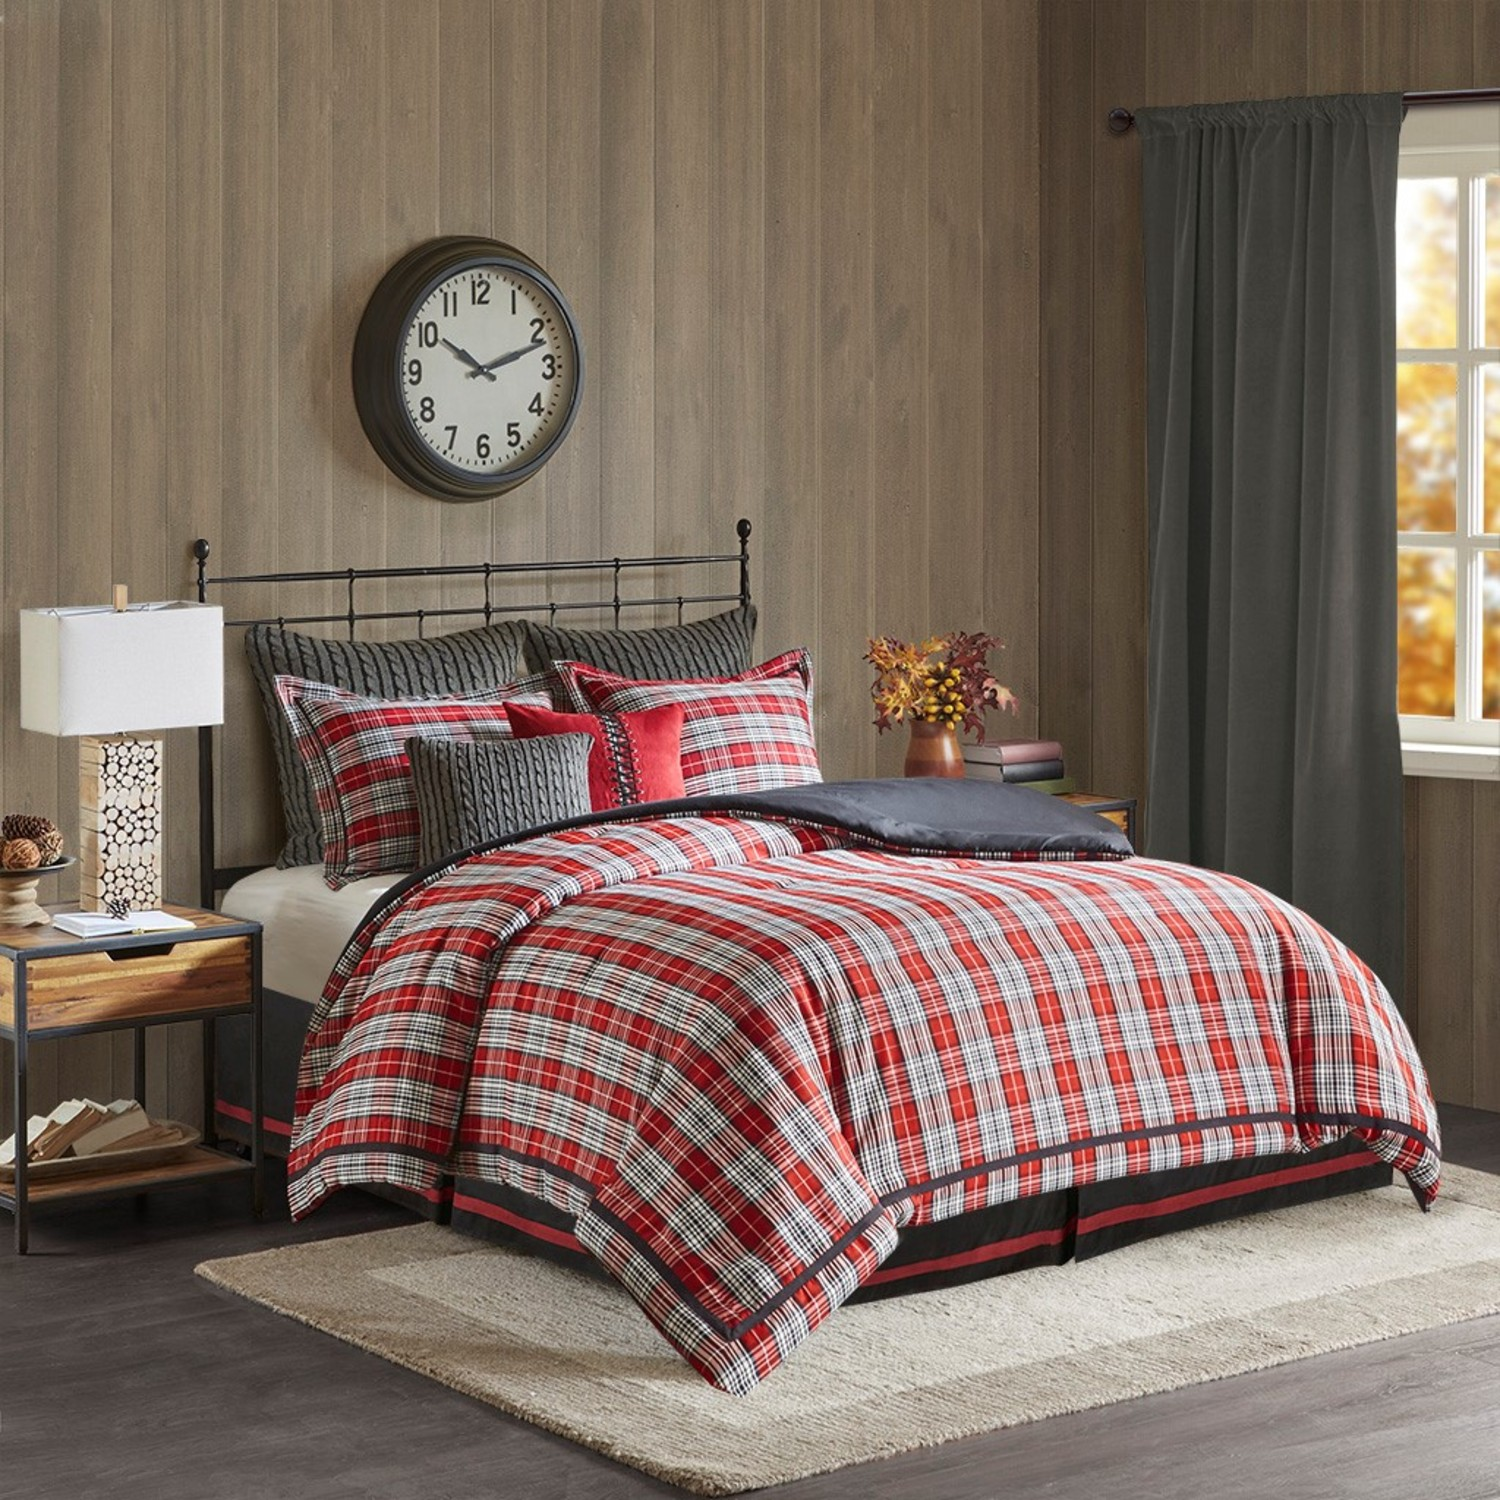 Tan Duvet Cover King Williamsport Plaid By Woolrich - Beddingsuperstore.com